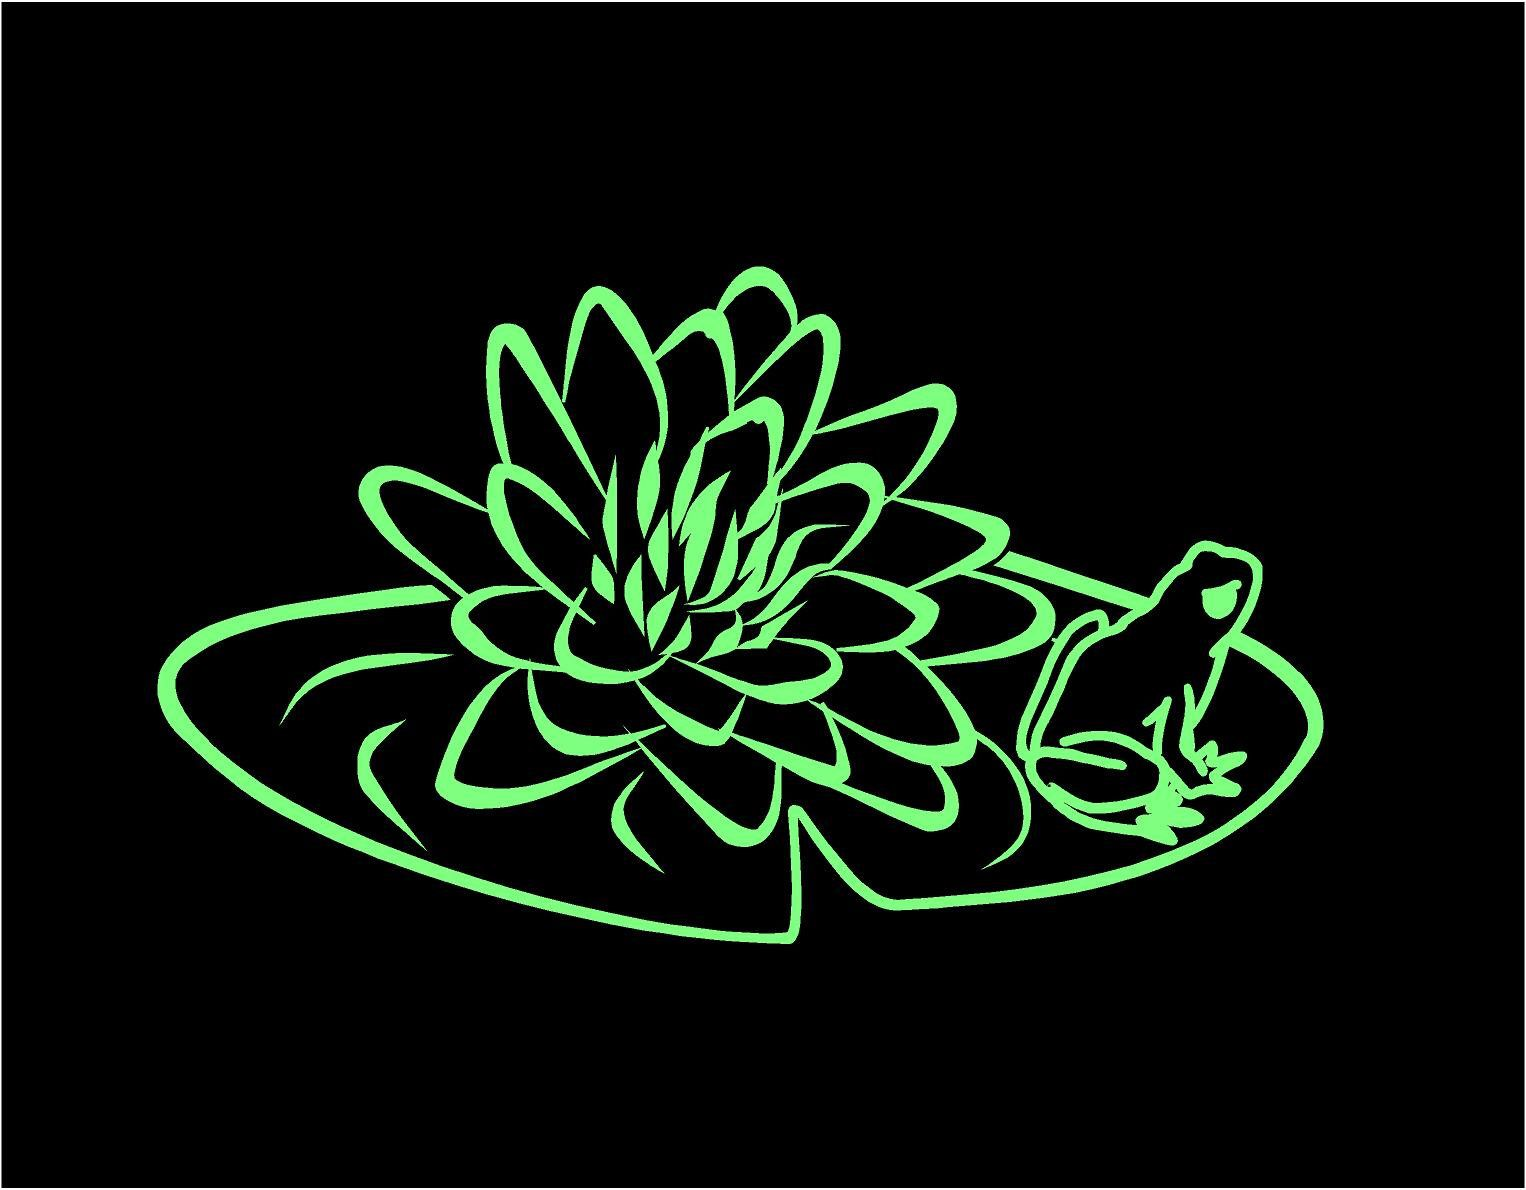 Lily Pad Frog Decal Floral Decal Lily Pad Decal Frog Decal Custom - Flower custom vinyl decals for car